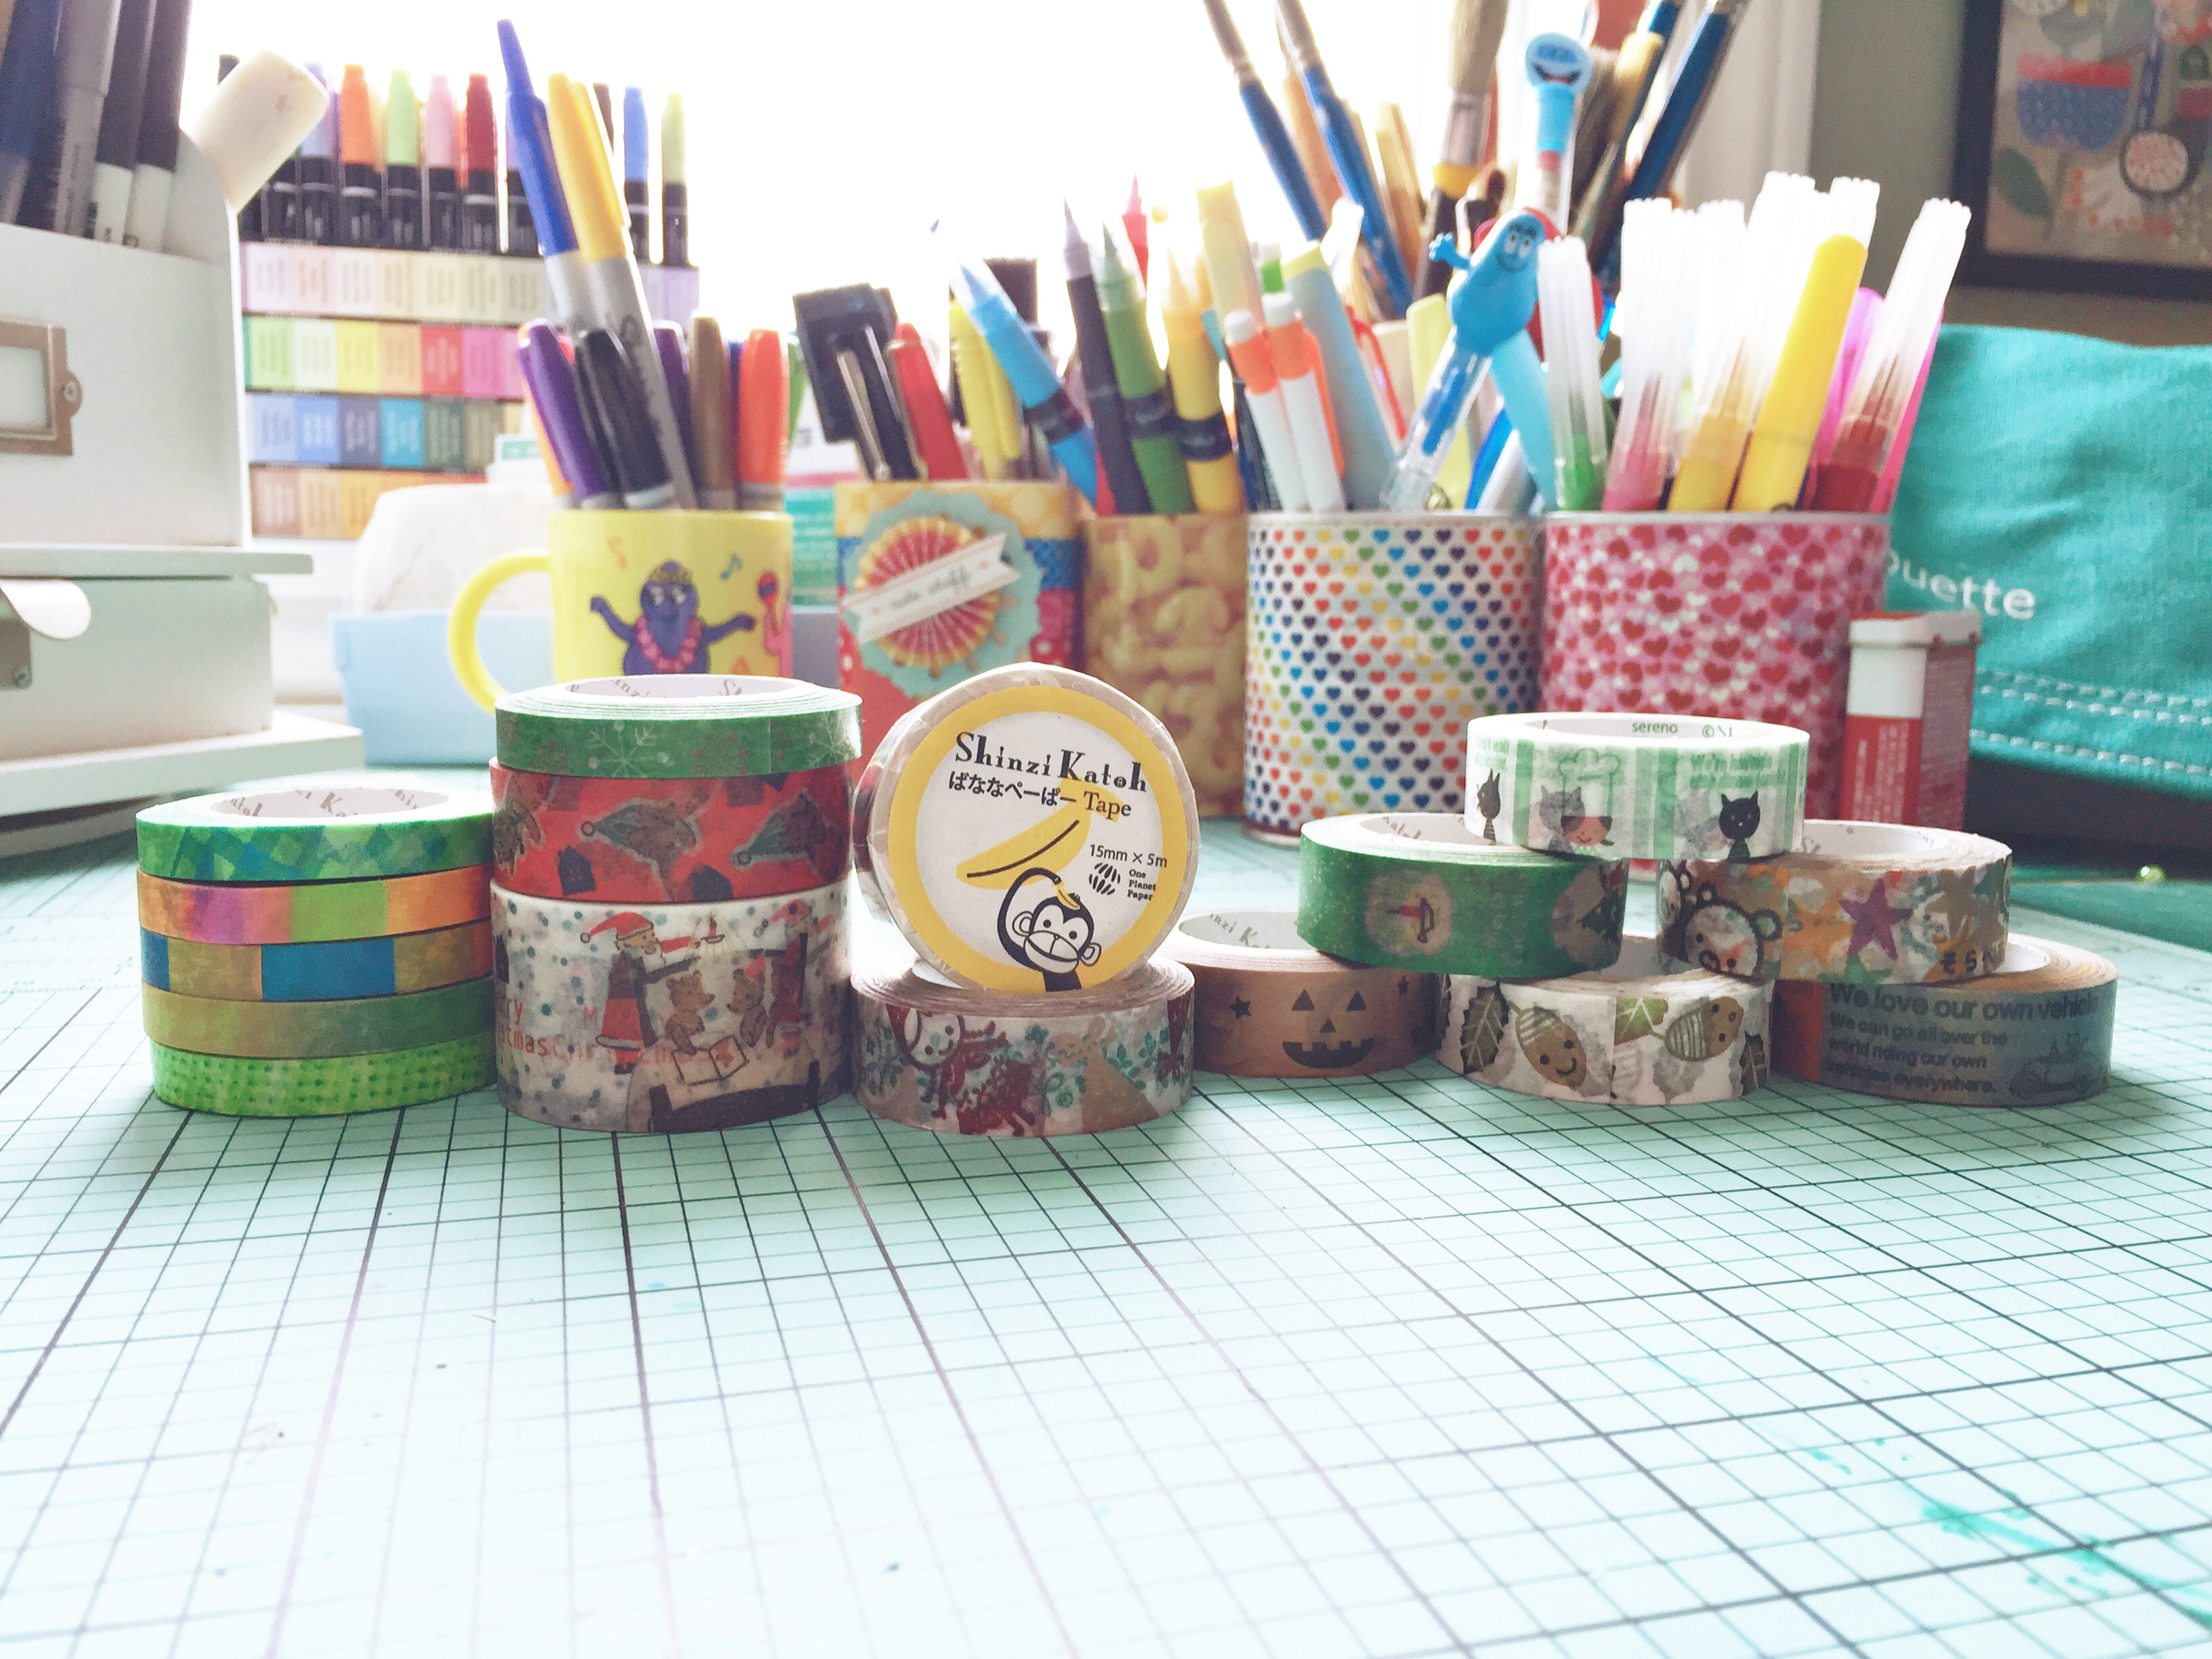 My Shinzi Katoh Washi Tape by Melanie Ritchie